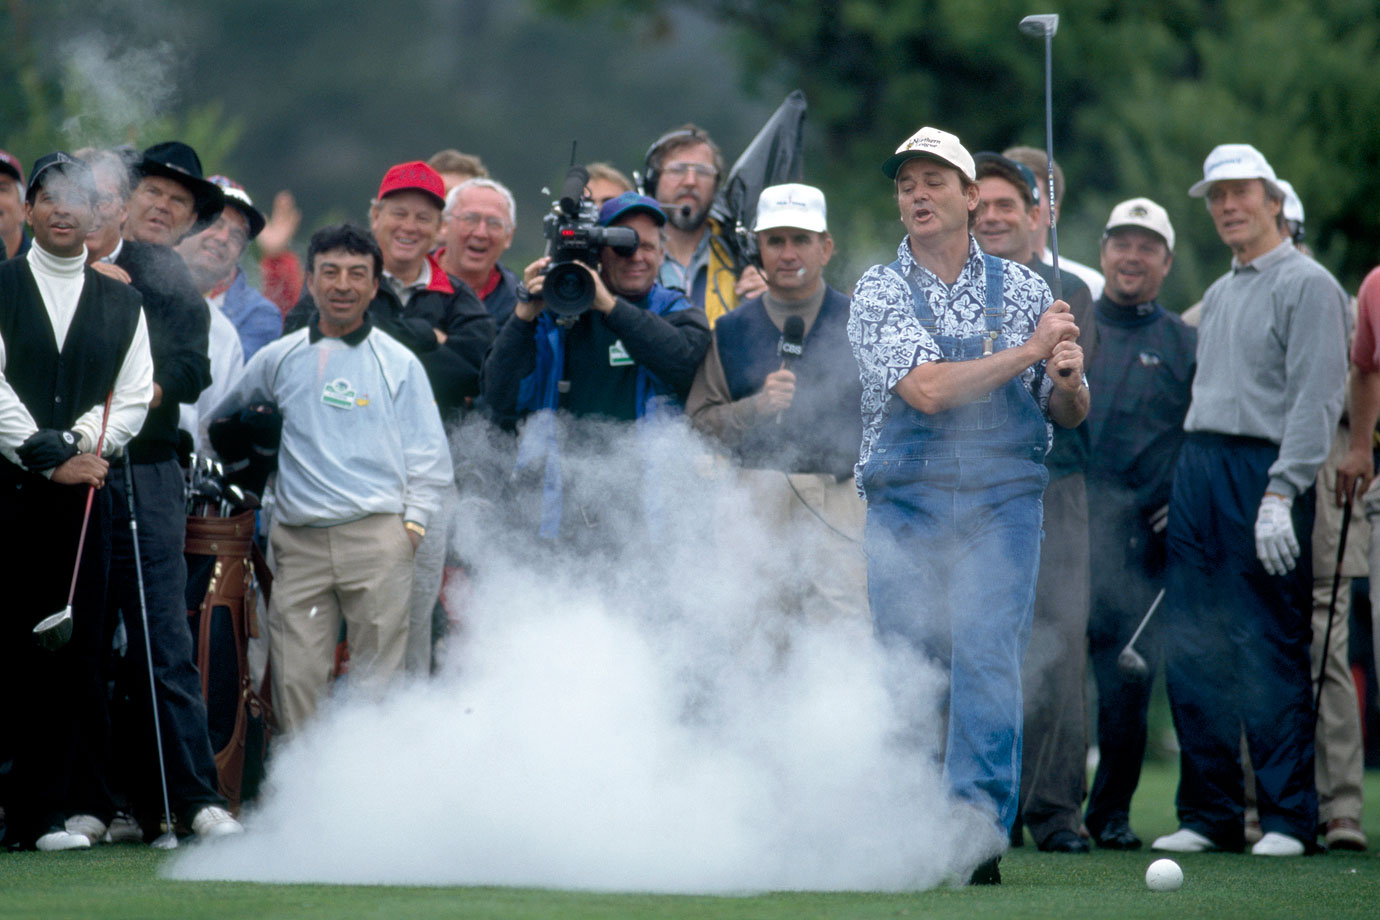 Bill Murray hits a fake golf ball which explodes in a cloud of smoke during during the 1996 AT&T Pebble Beach National Pro-Am golf tournament at Pebble Beach, Calif.